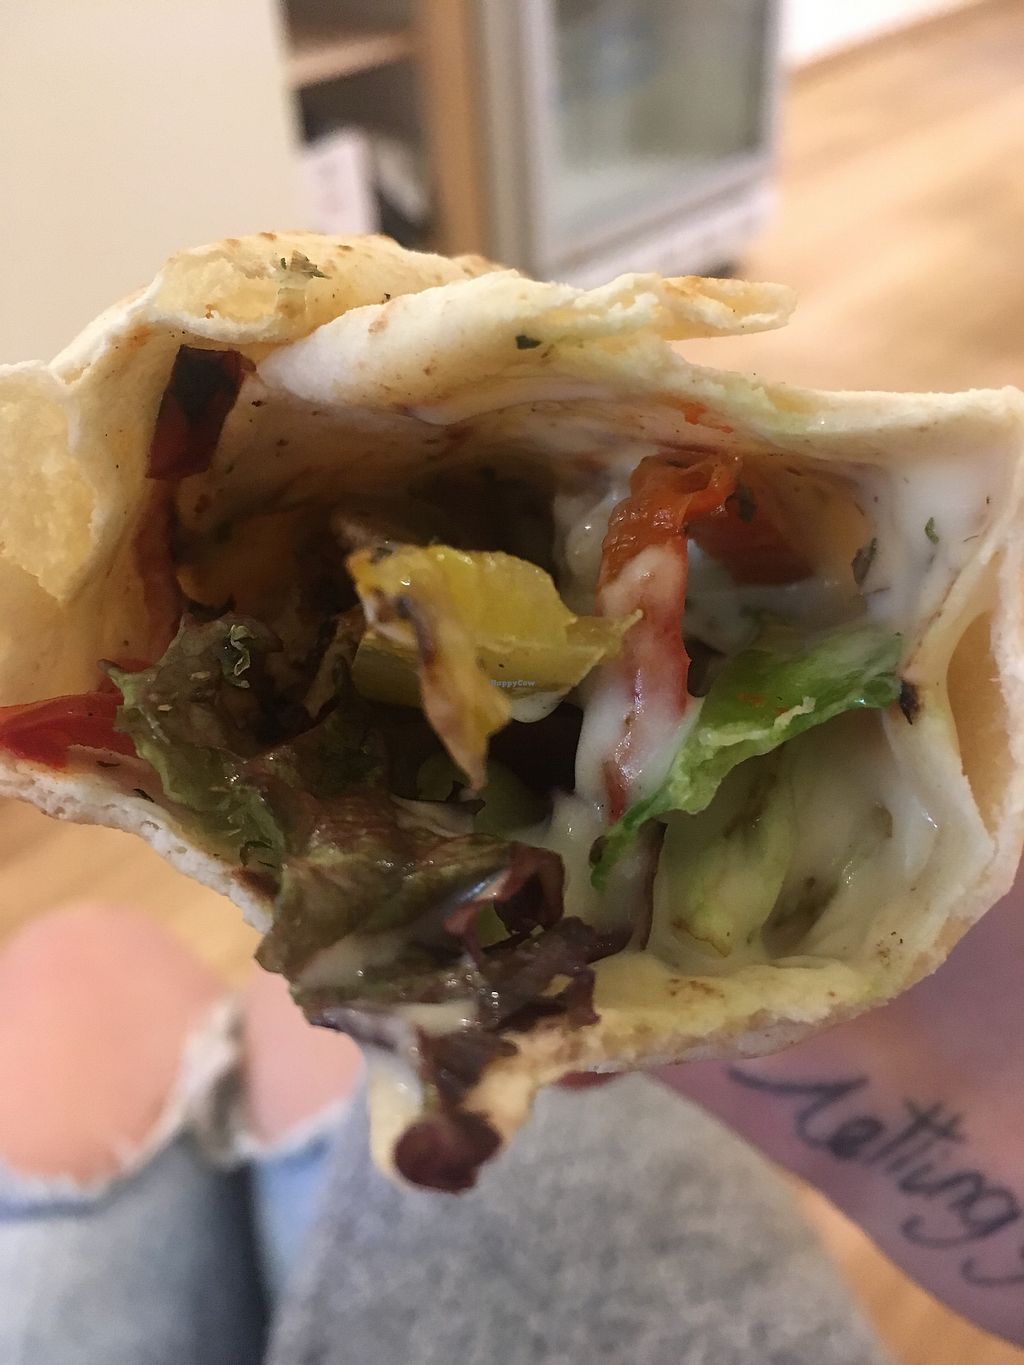 """Photo of Peas  by <a href=""""/members/profile/Marieanne"""">Marieanne</a> <br/>Seitan wrap <br/> March 24, 2018  - <a href='/contact/abuse/image/104532/375149'>Report</a>"""